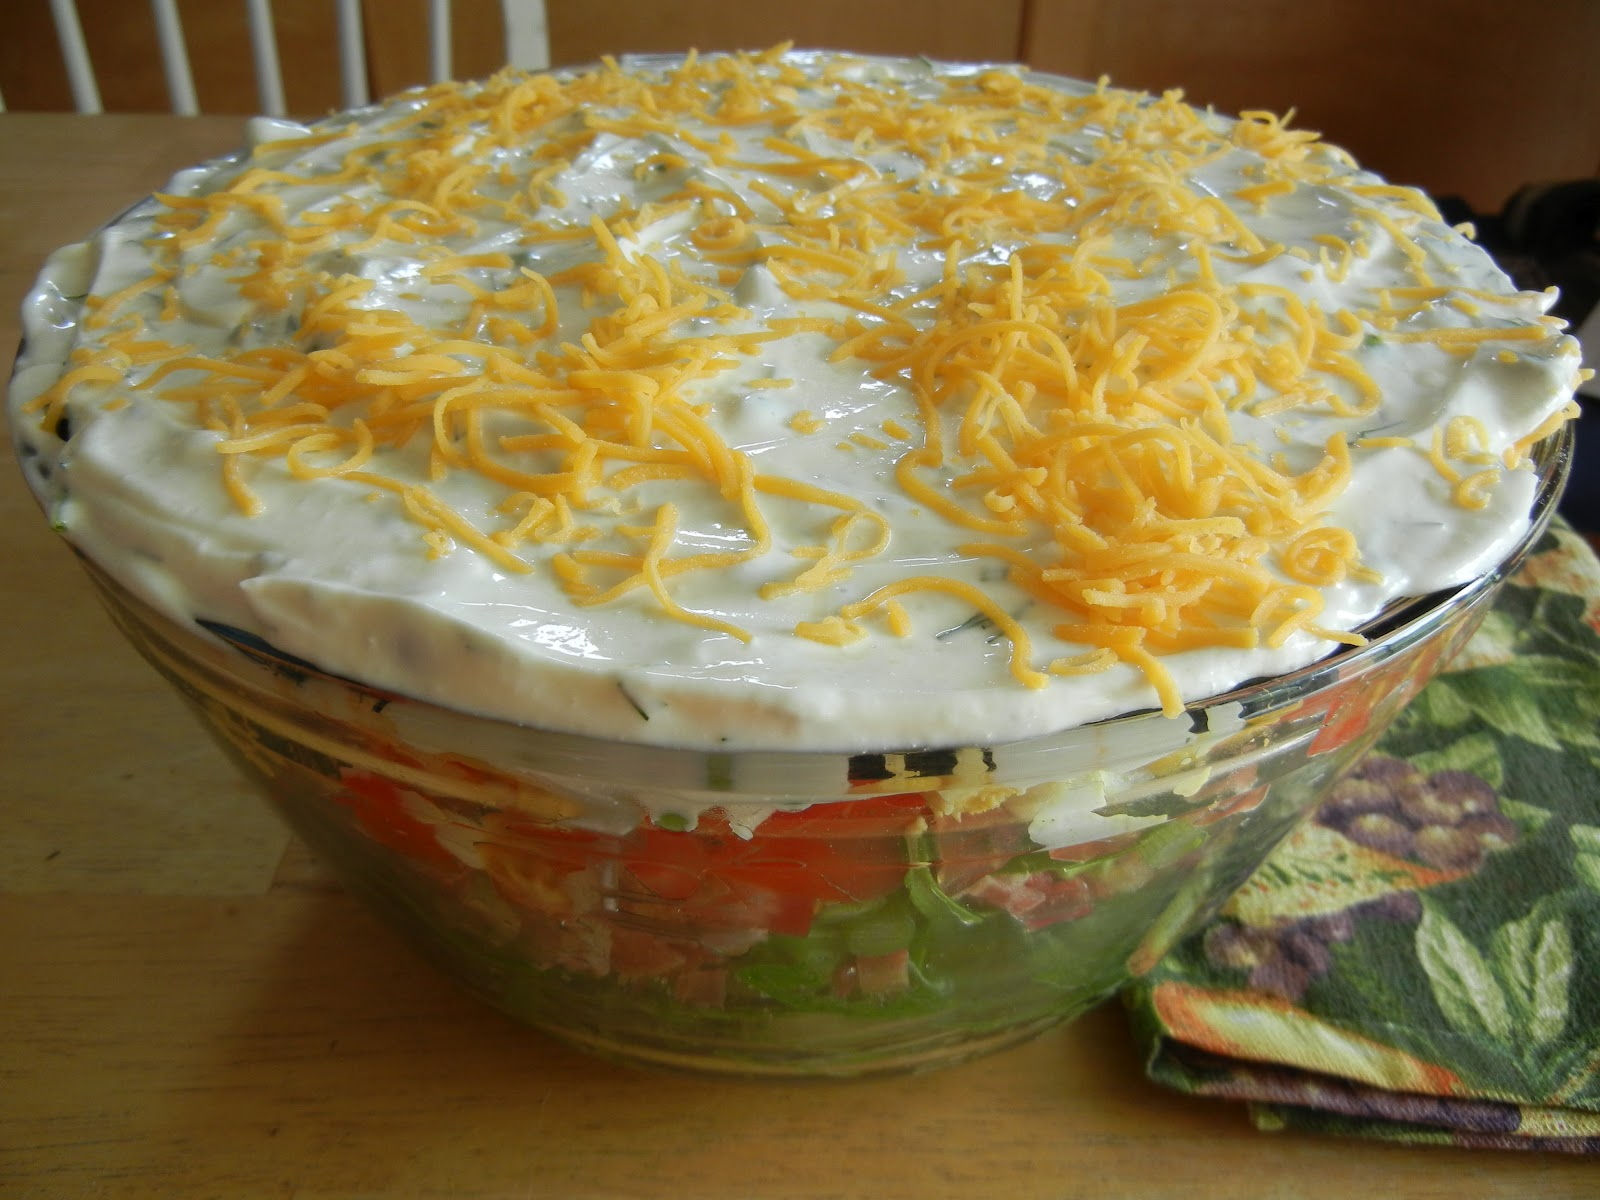 From My Southwest Kitchen: Layered Salad